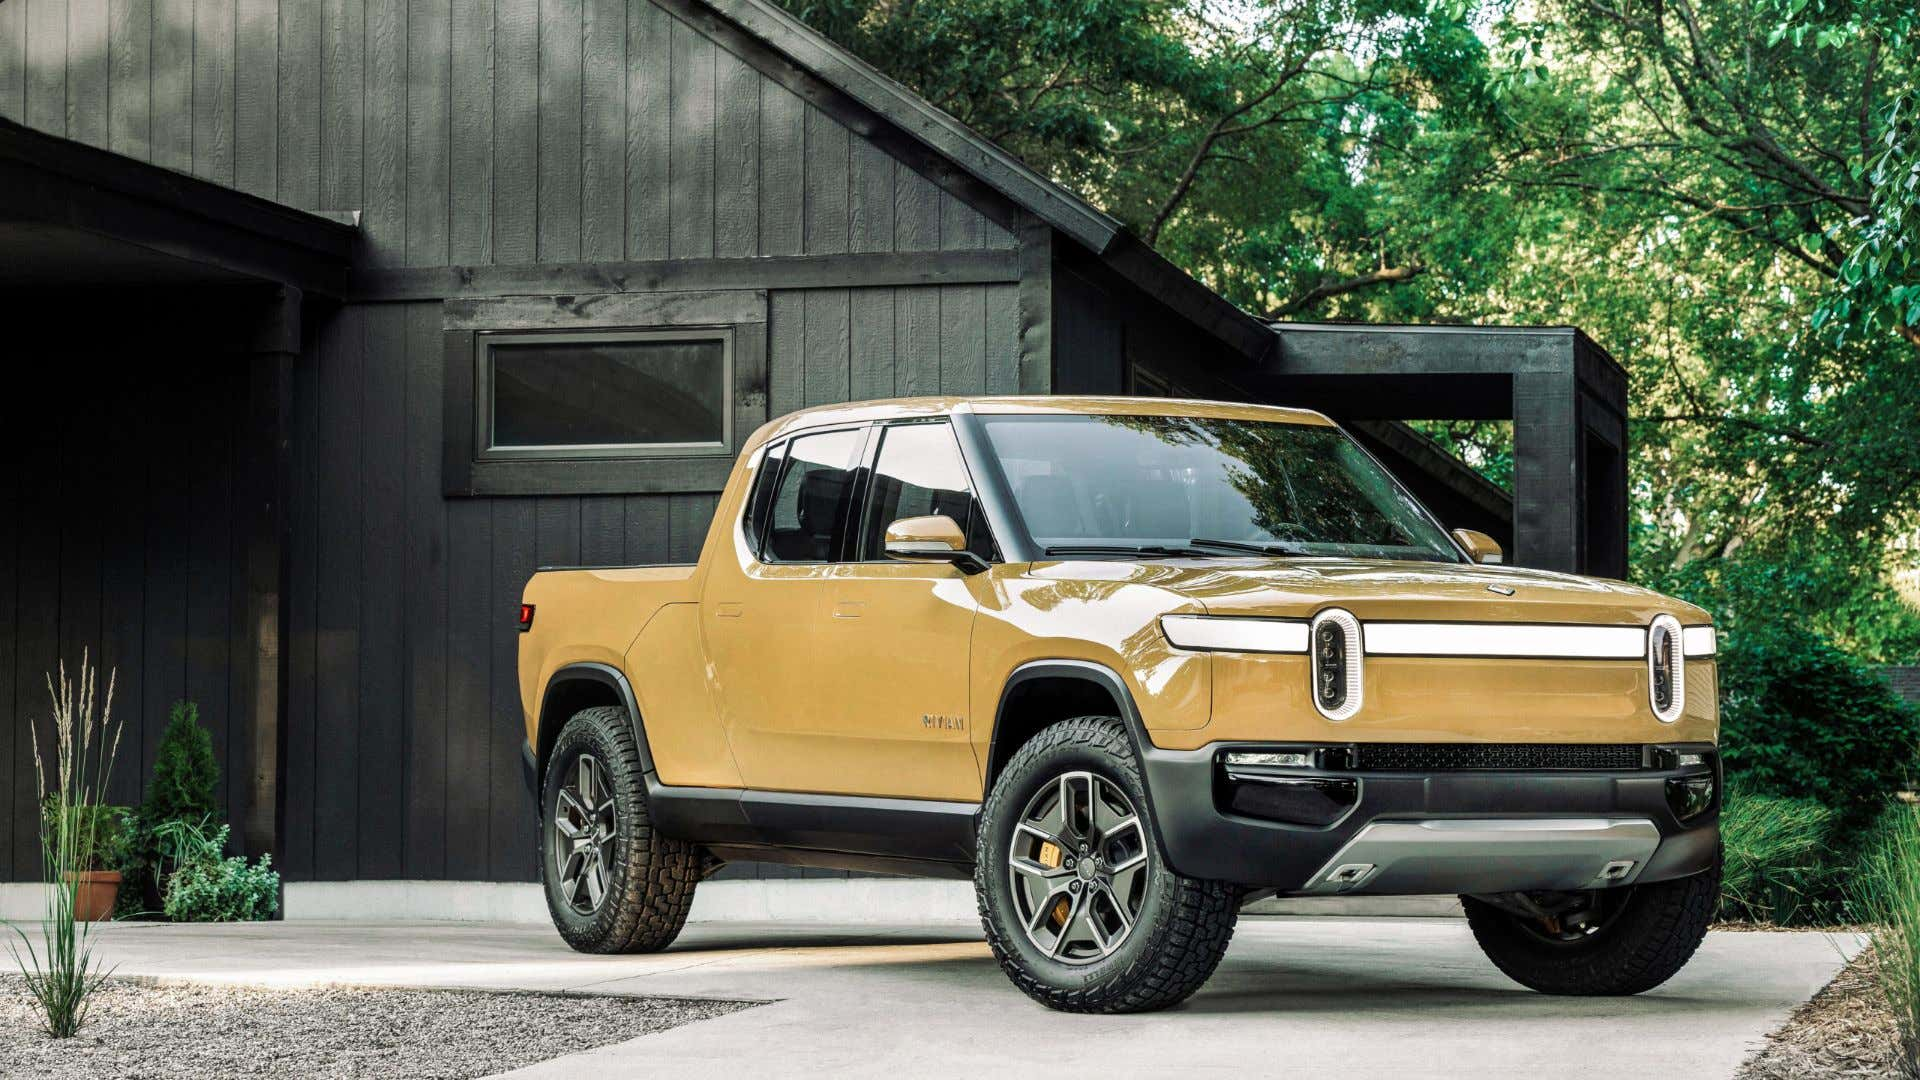 Rivian's all-electric R1T has a ton of torque and horsepower.